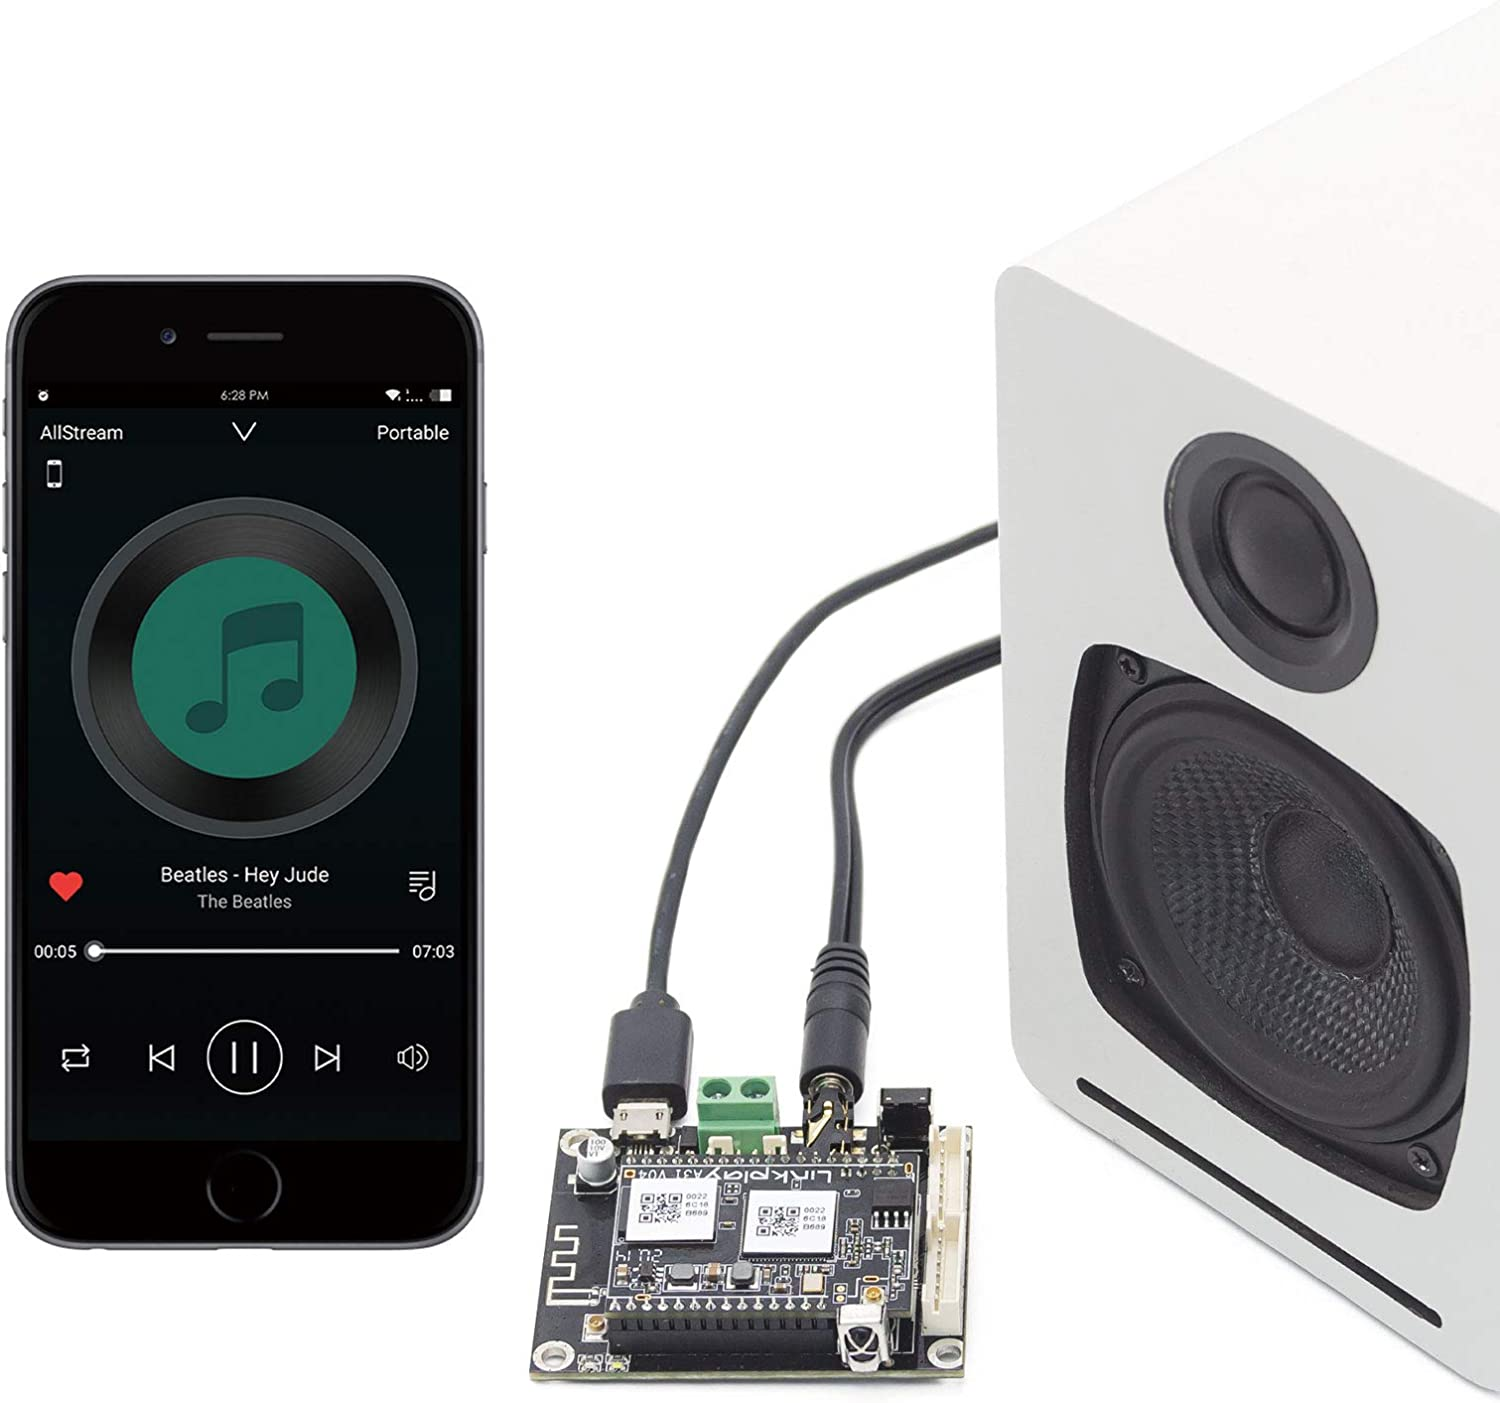 Arylic WiFi & Bluetooth Audio Receiver Board, Wireless Multizone Home Stereo Music Receiver Circuit Module with Airplay Spotify Connect and Remote Control for DIY Speakers Mini V3